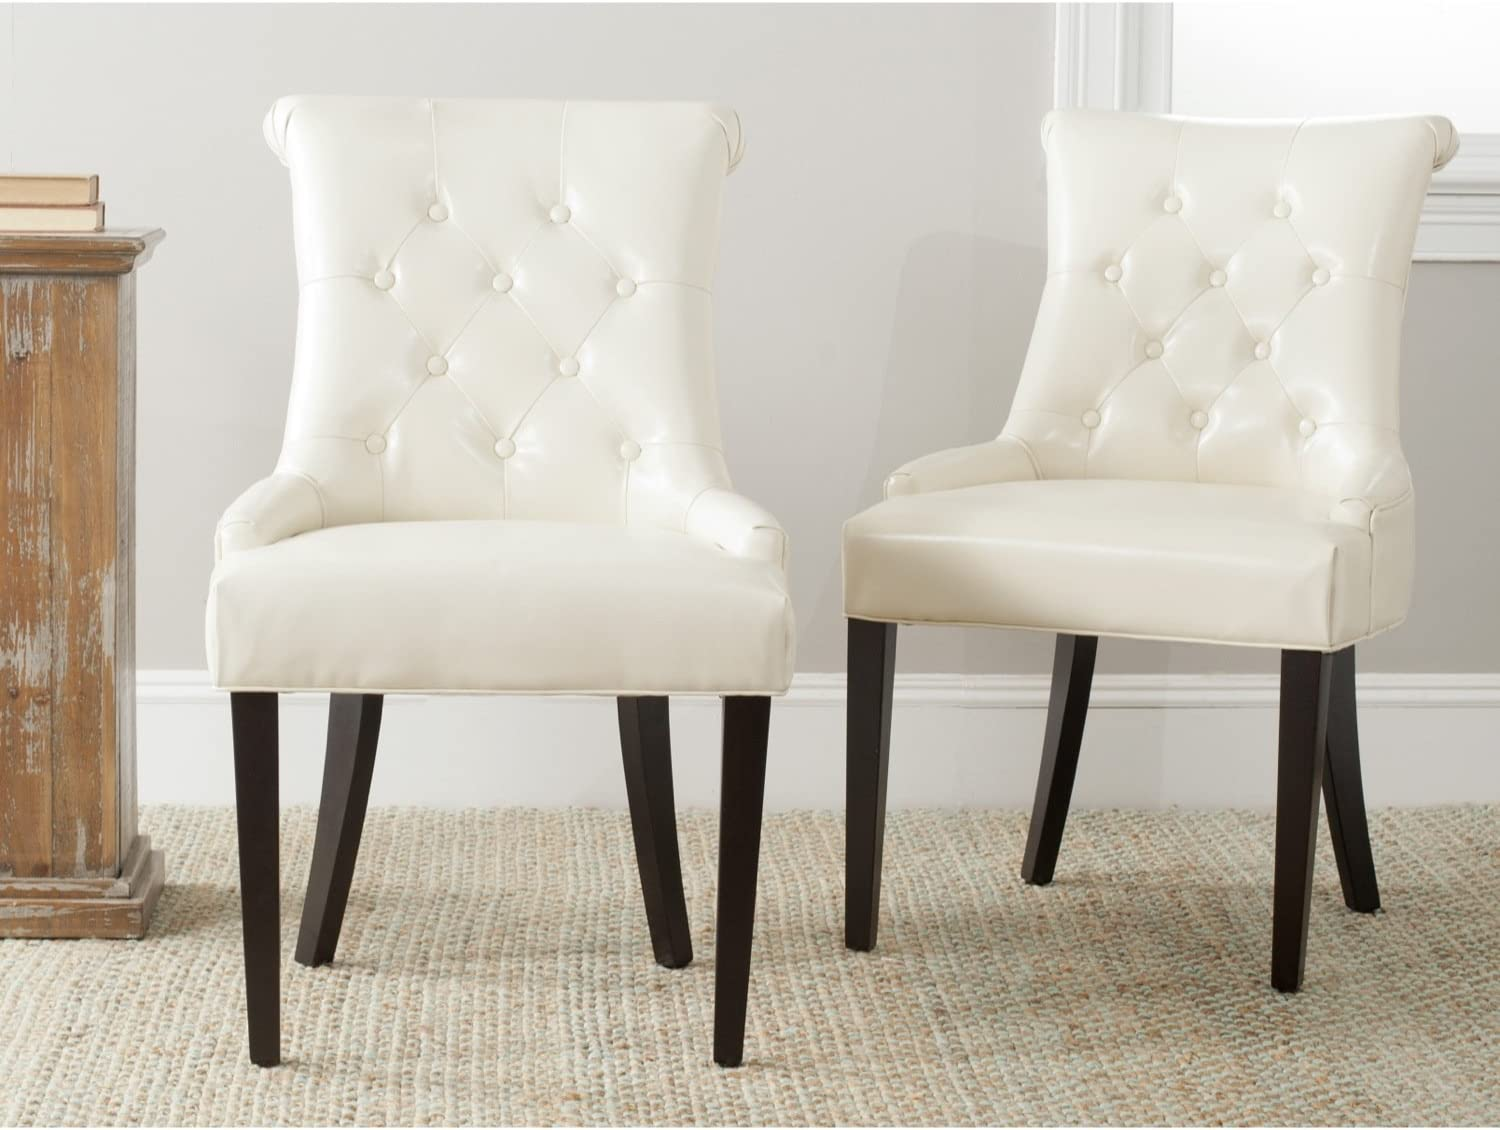 Safavieh Mercer Collection Bowie Dining Chairs, Cream, Set of 2